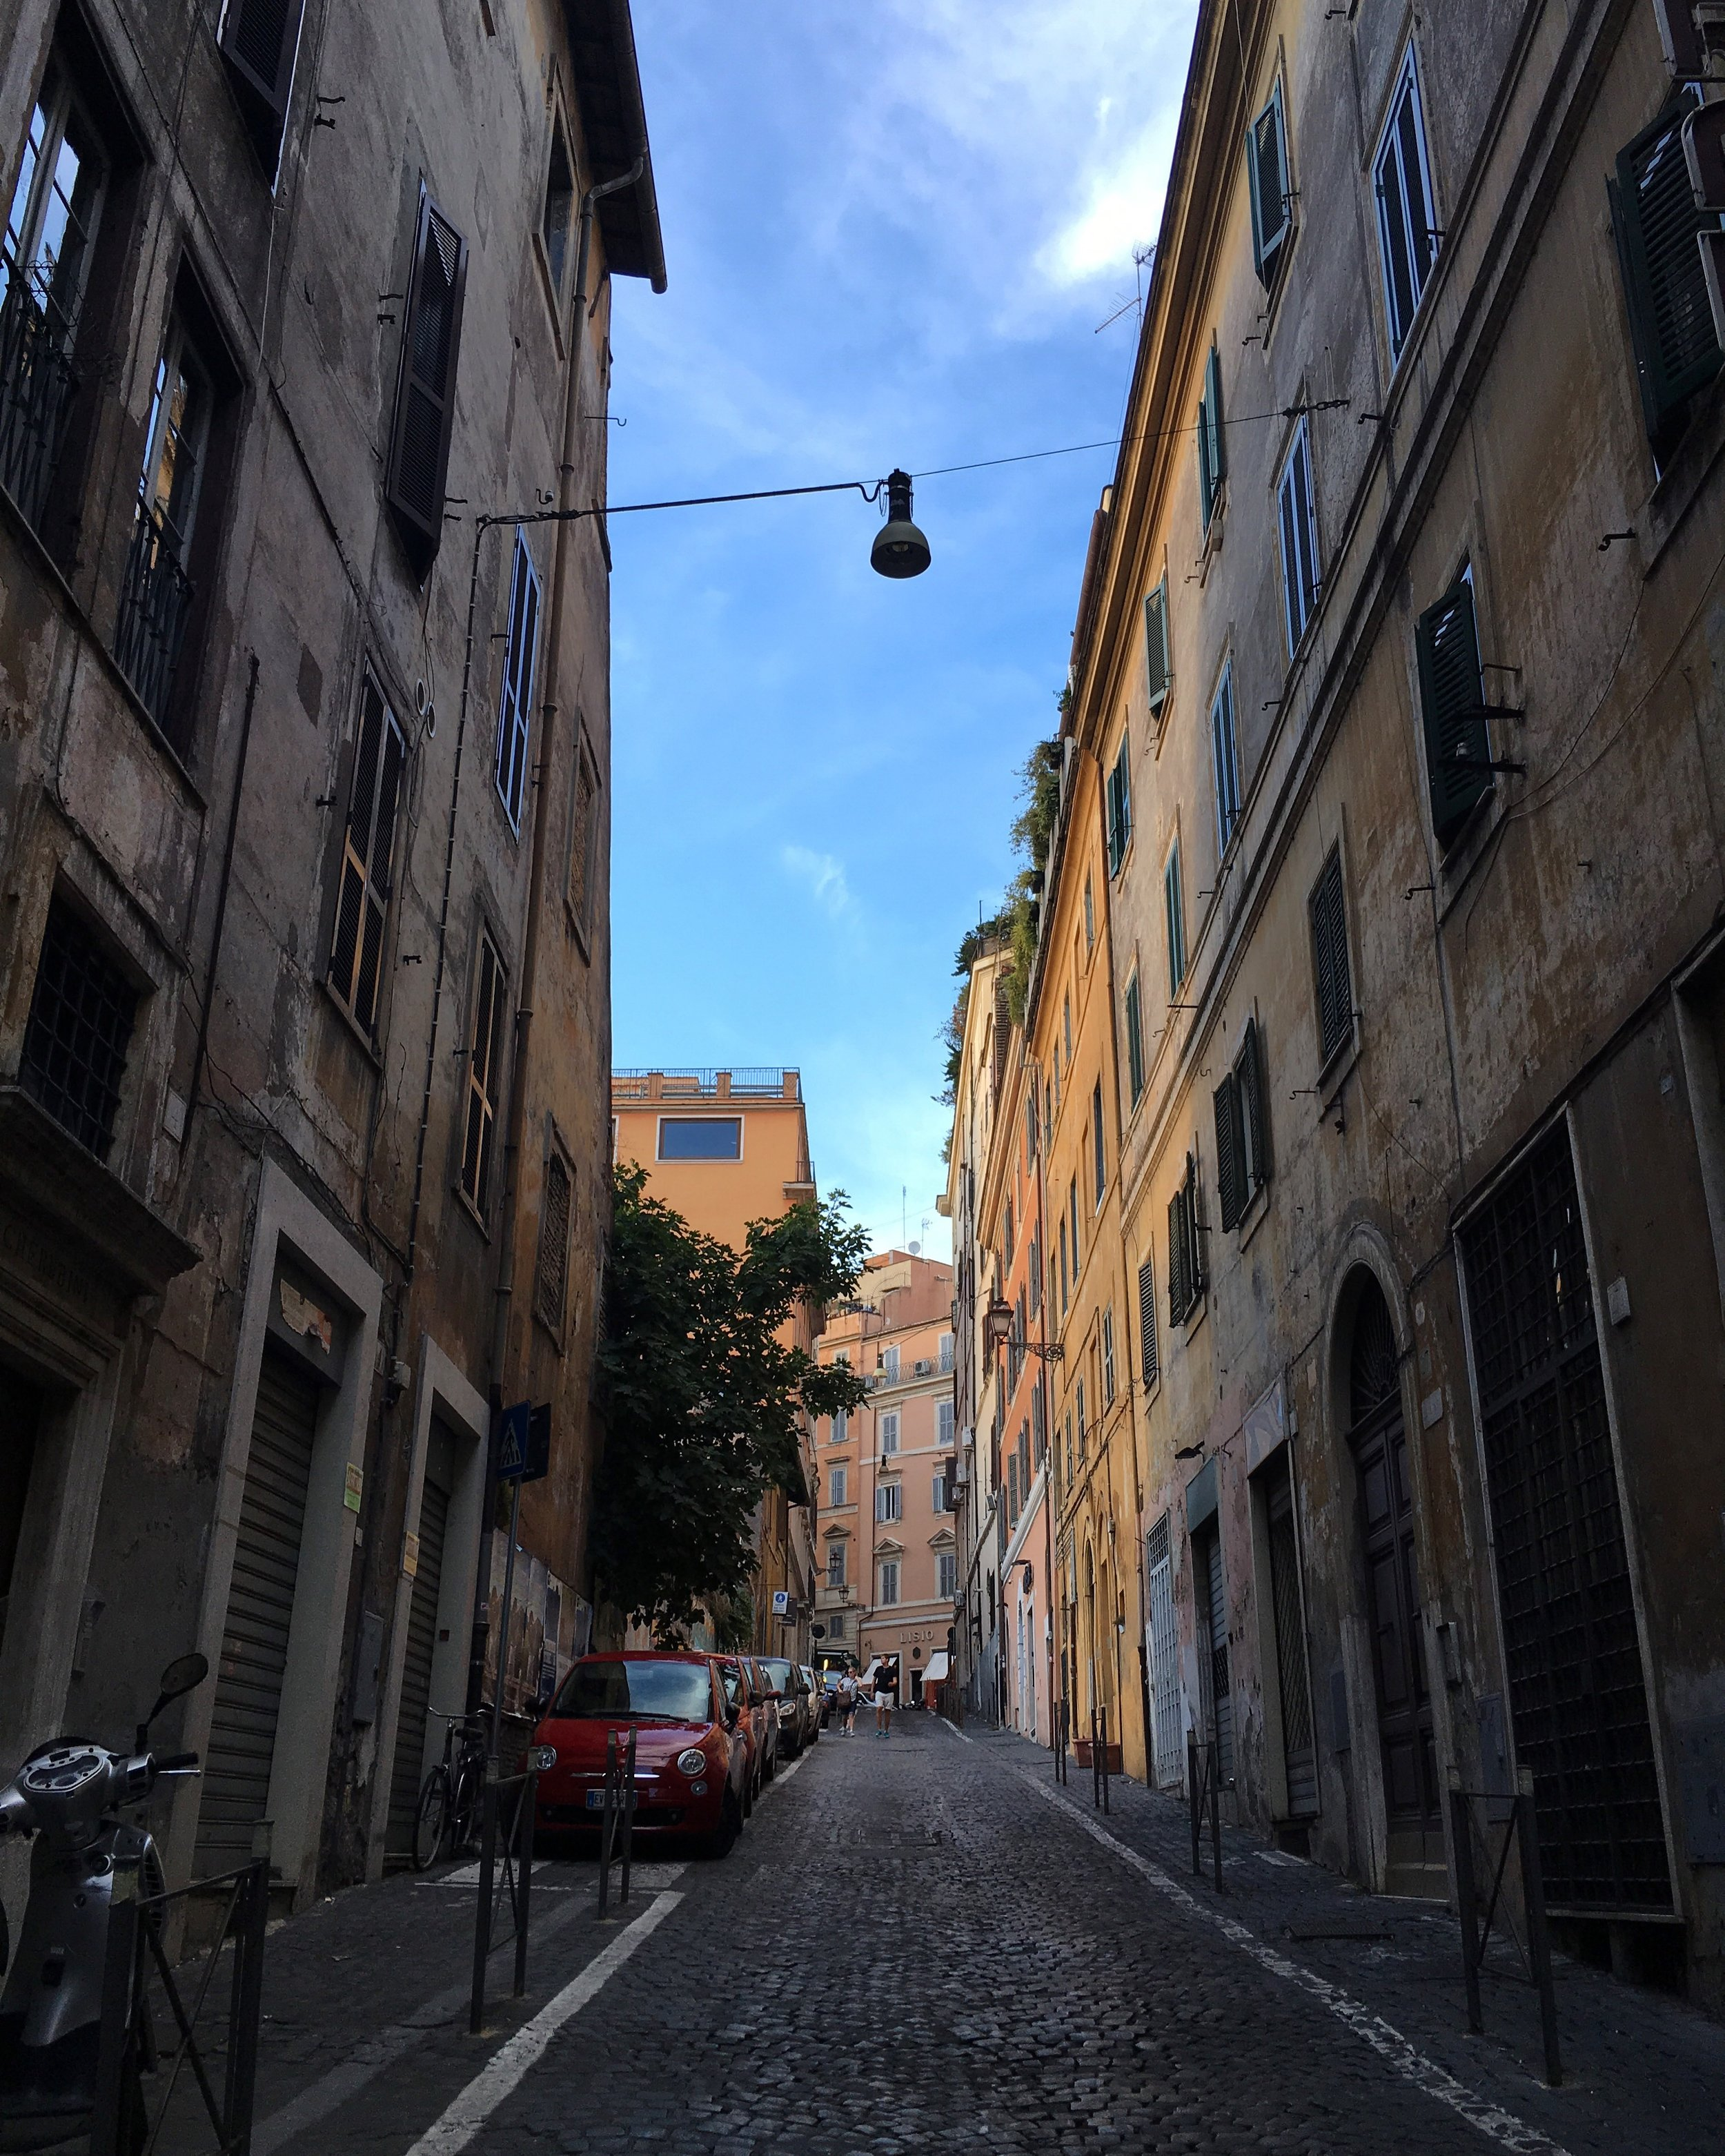 The alleys in Rome are definitely enchanting.